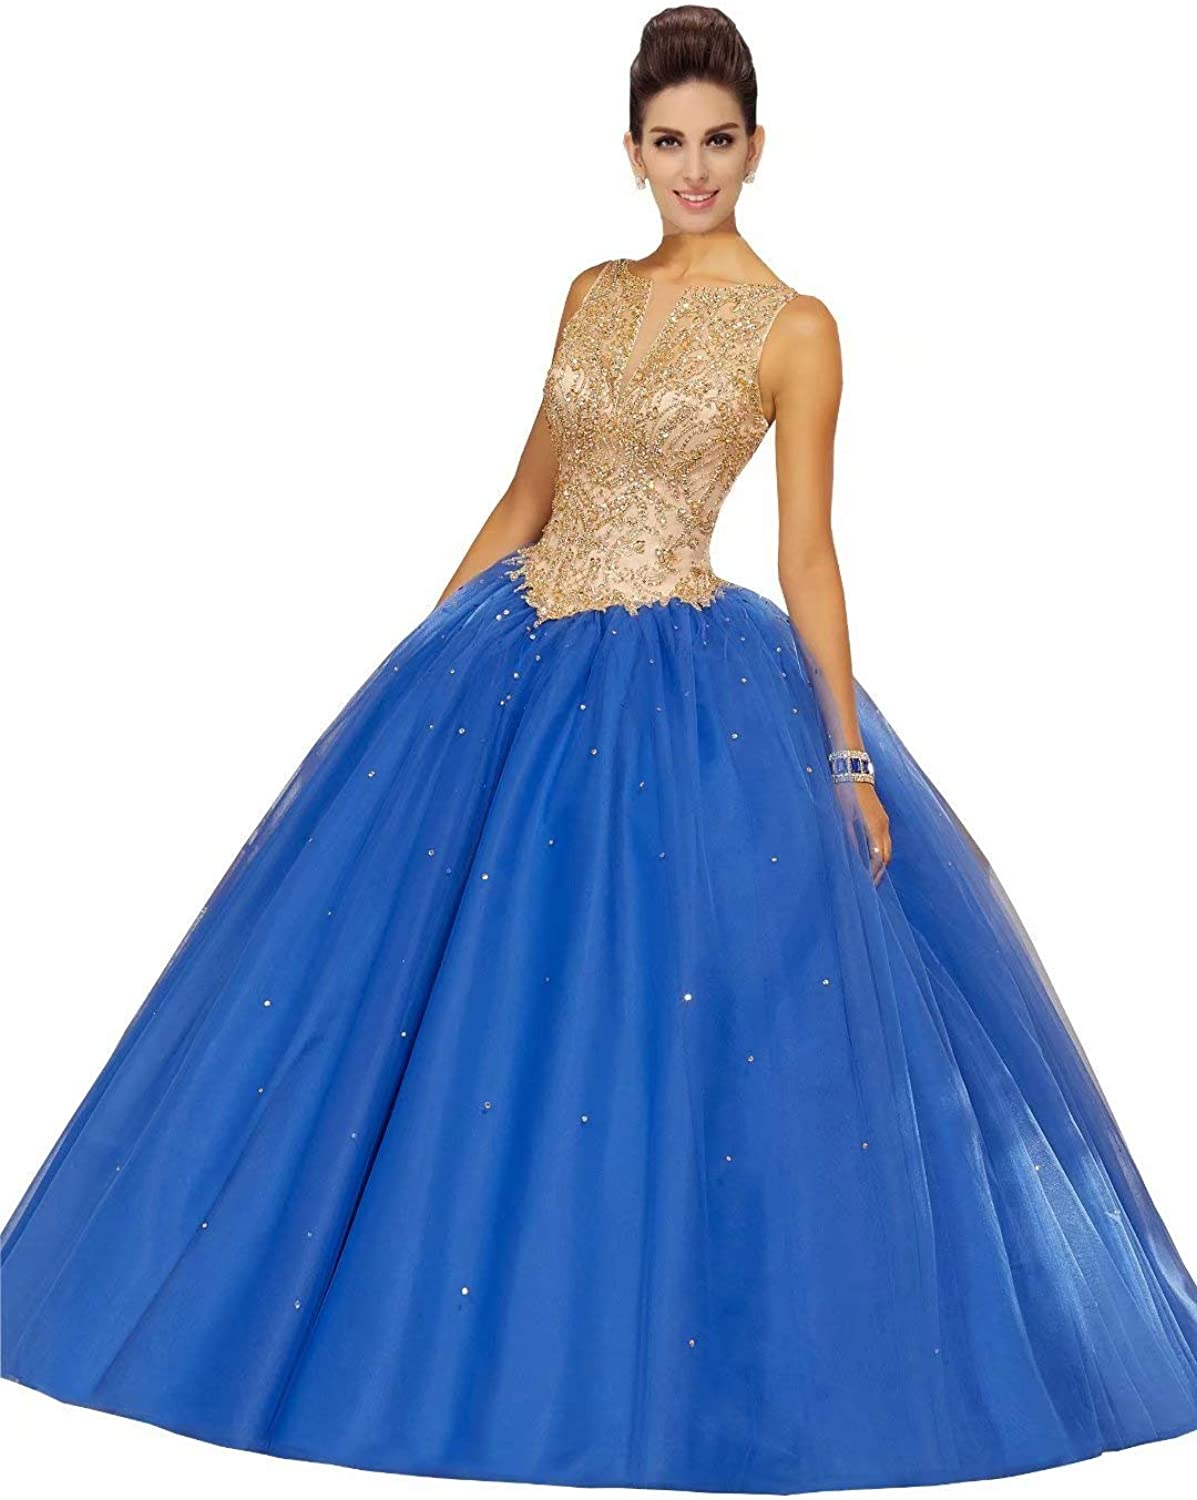 Fannydress gold Beading Crystal Princess Prom Dresses Ball Gowns Bateau Laceup Draped Quinceanera Dress 2019